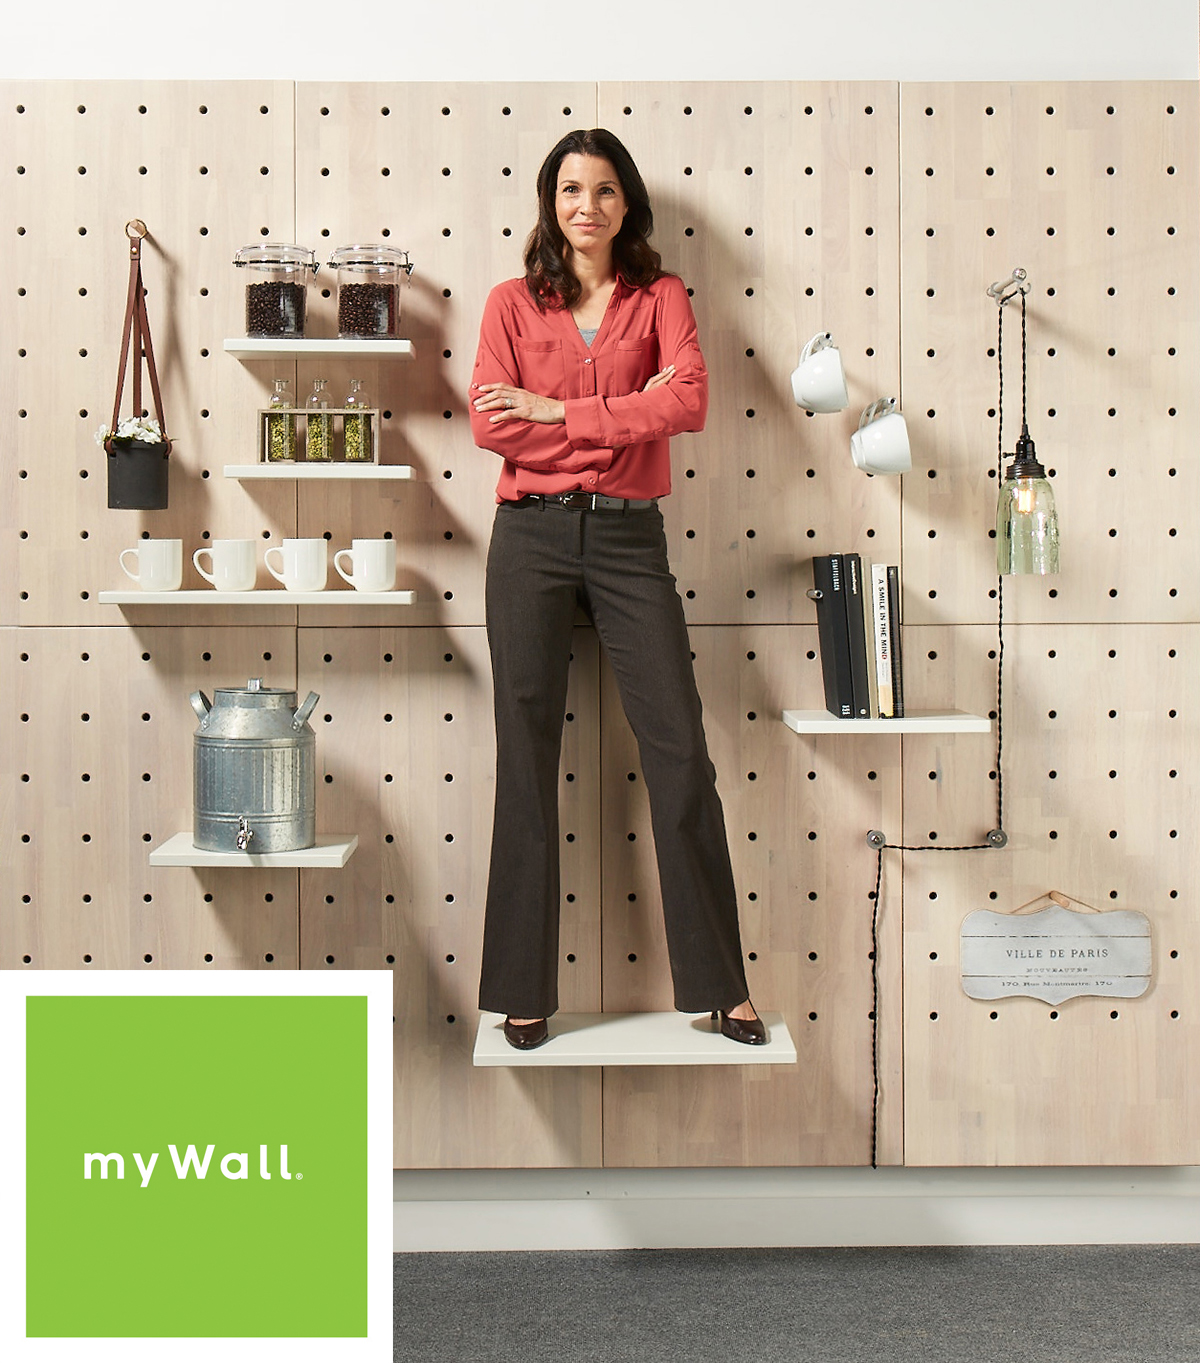 myWall-shelf-standing.jpg